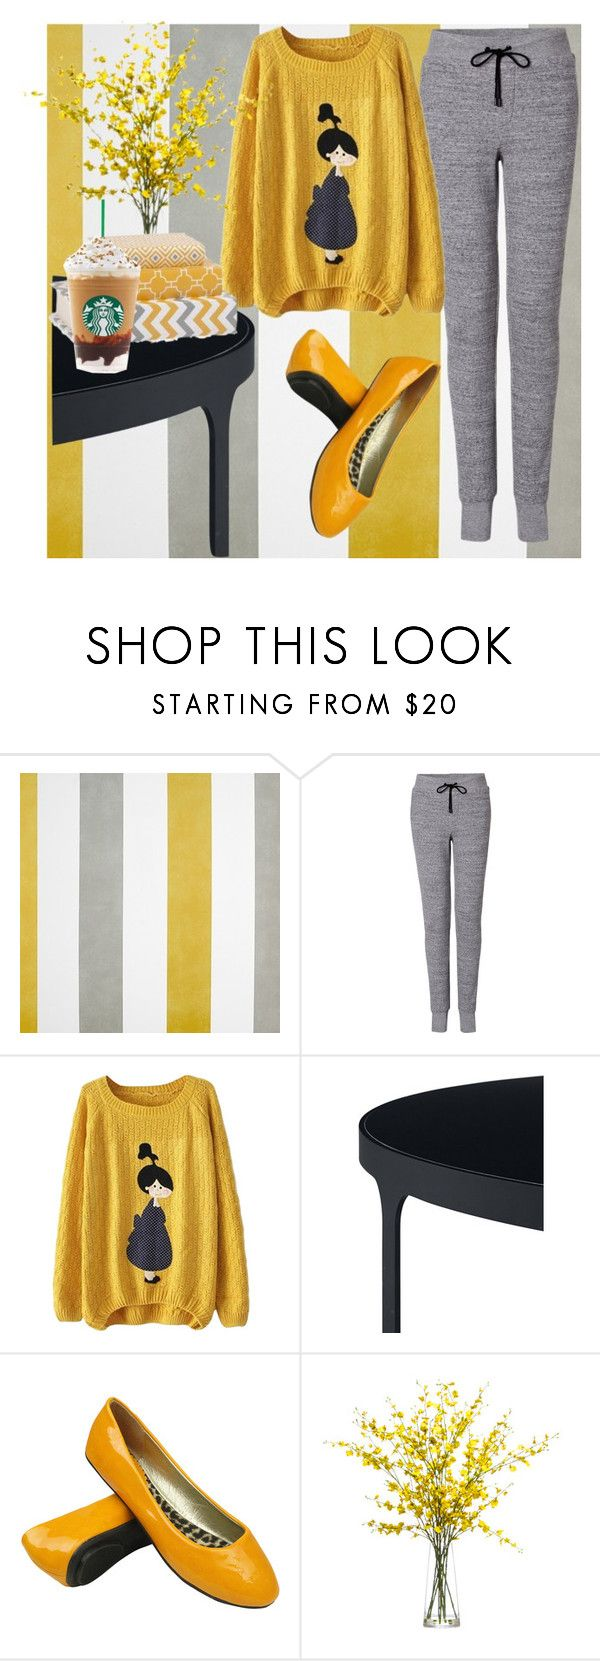 """Cozy day"" by aliroseheart ❤ liked on Polyvore featuring rag & bone, Lux-Art Silks and Imax Home"